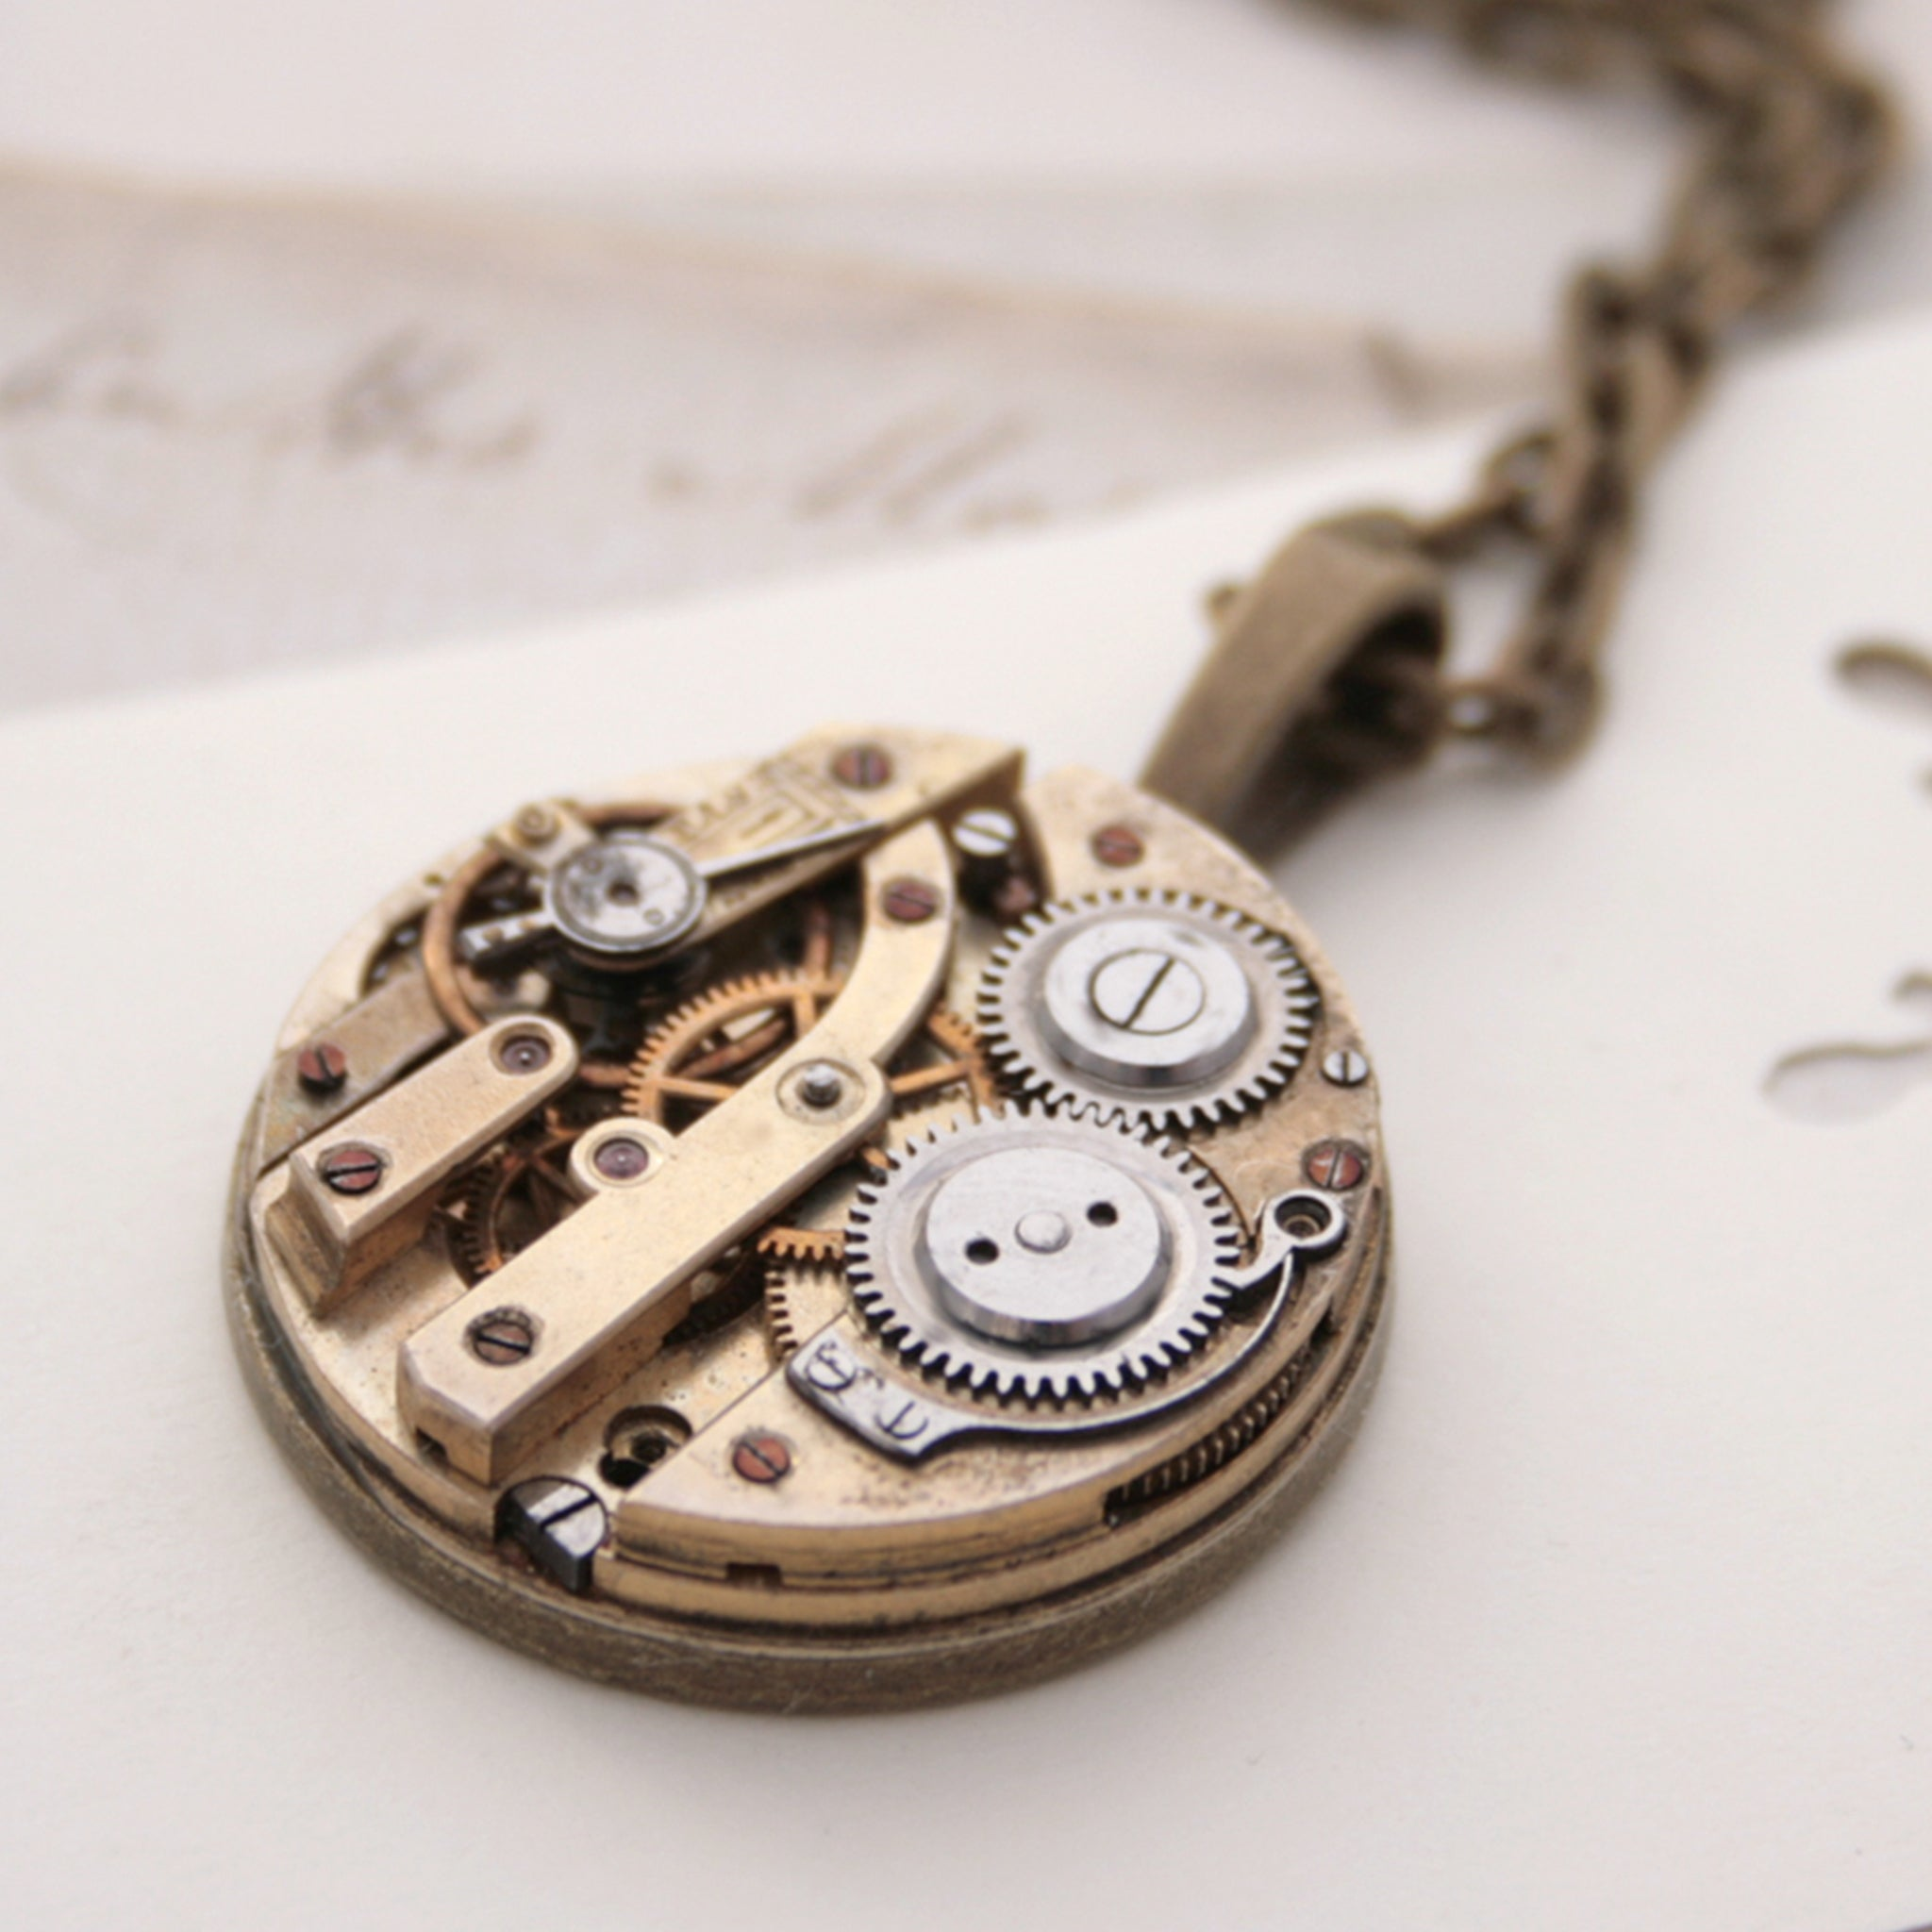 Unique Pendant Necklace with Watch Mechanism in Steampunk Style